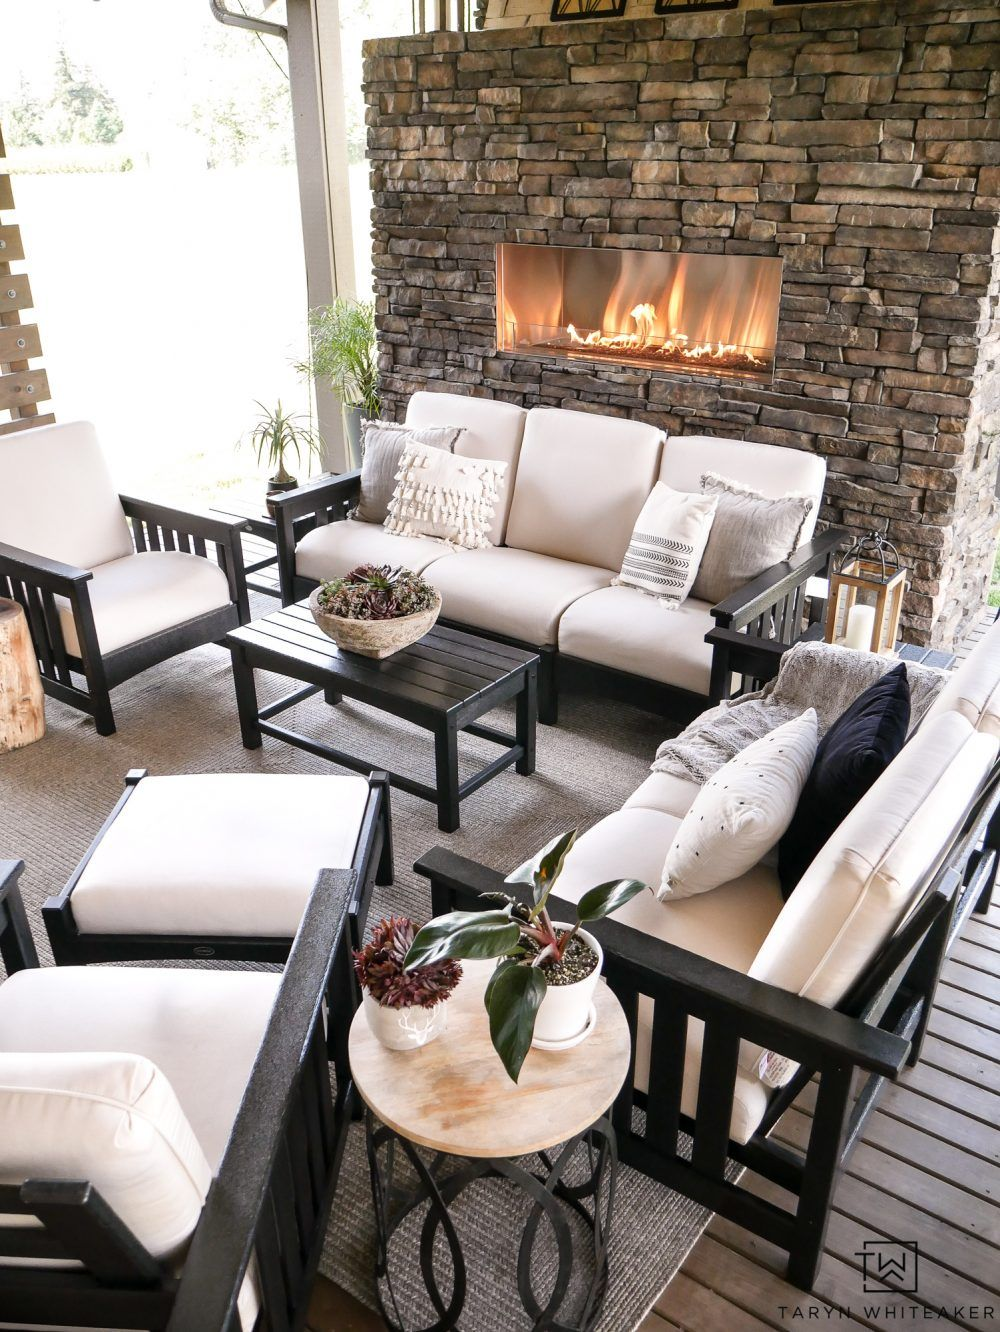 Luxurious Outdoor Living E With Stone Fireplace And Beautiful Black White Patio Furniture Outdoore Outdoorliving Patiodecor